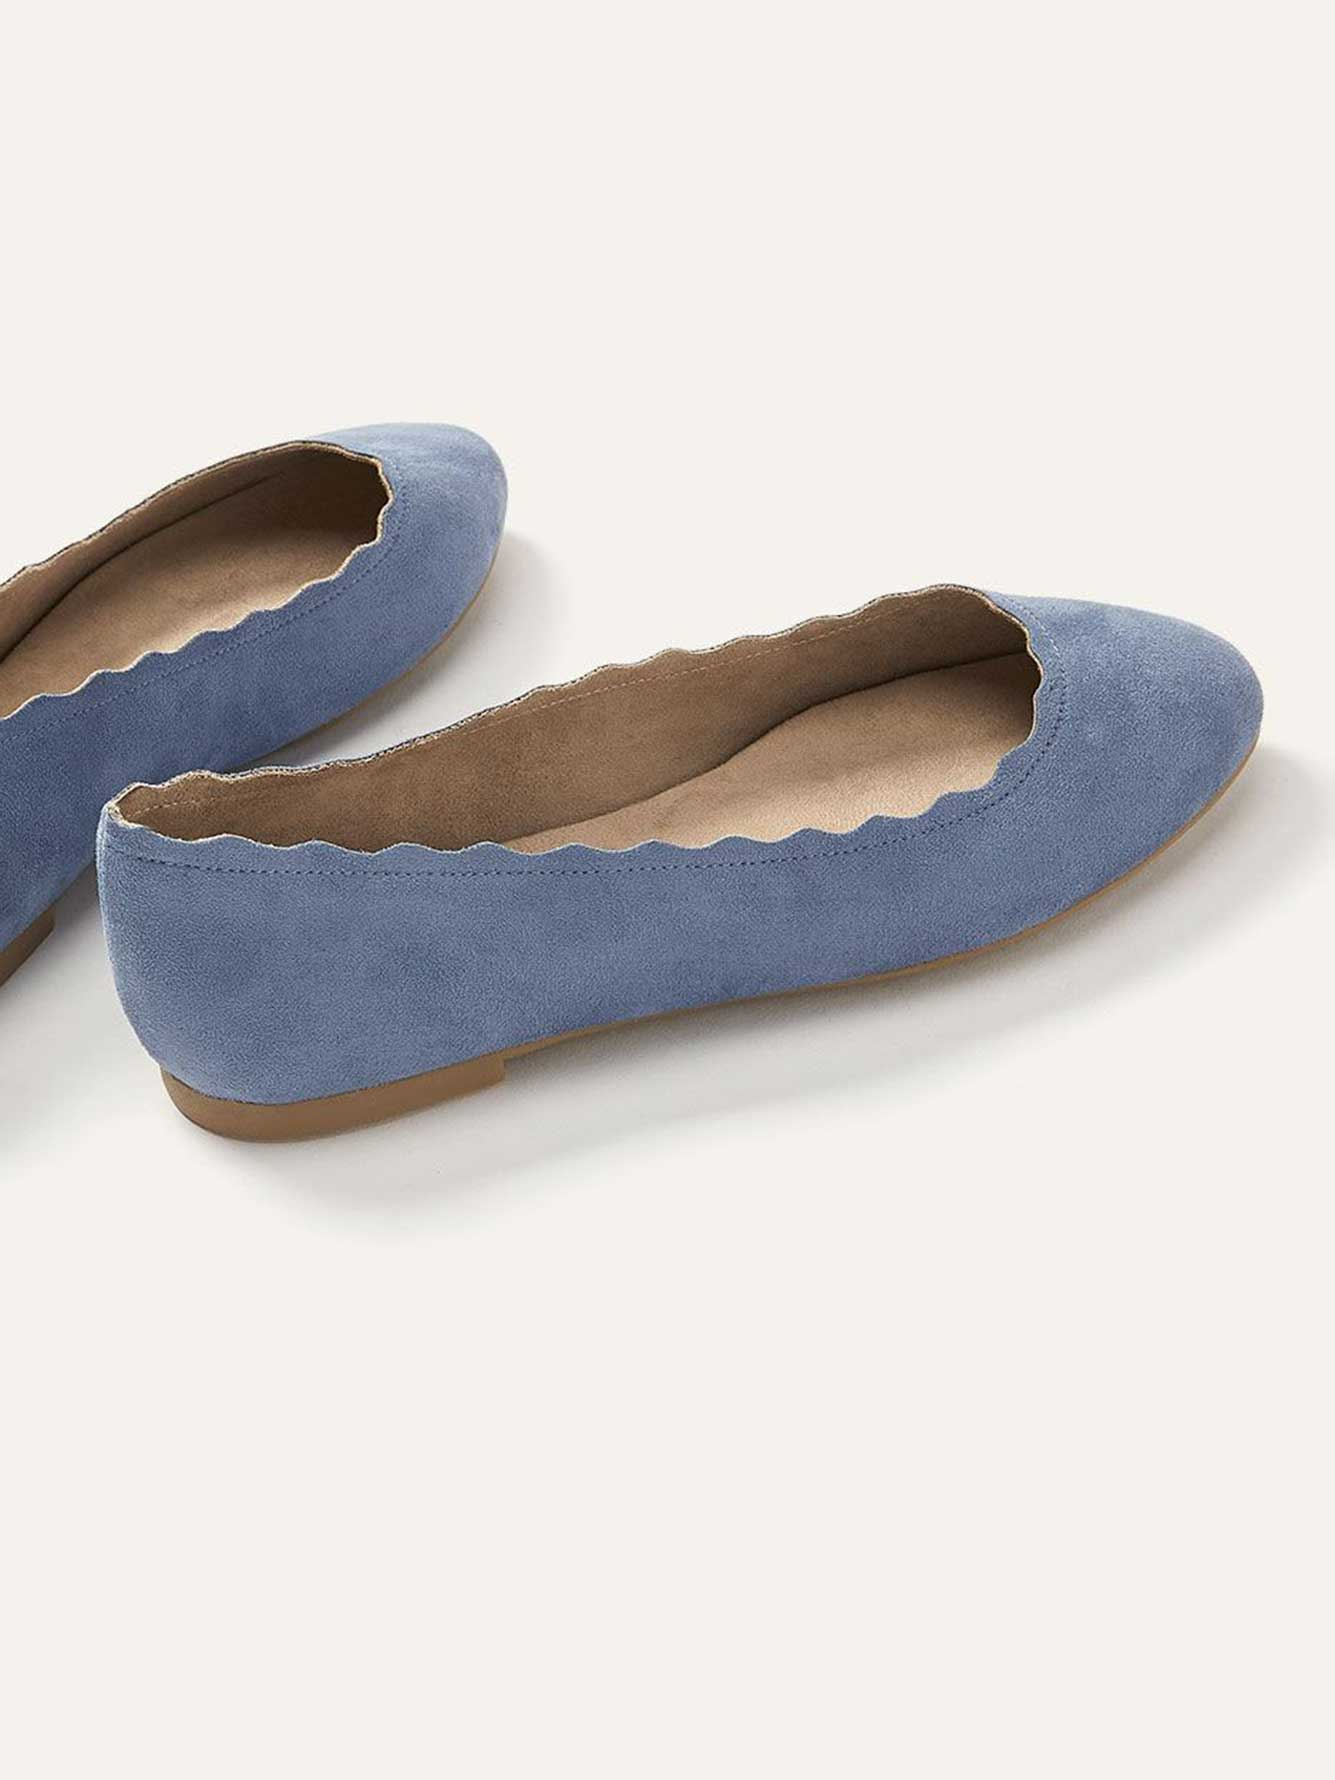 Wide Scalloped Ballerina Flats